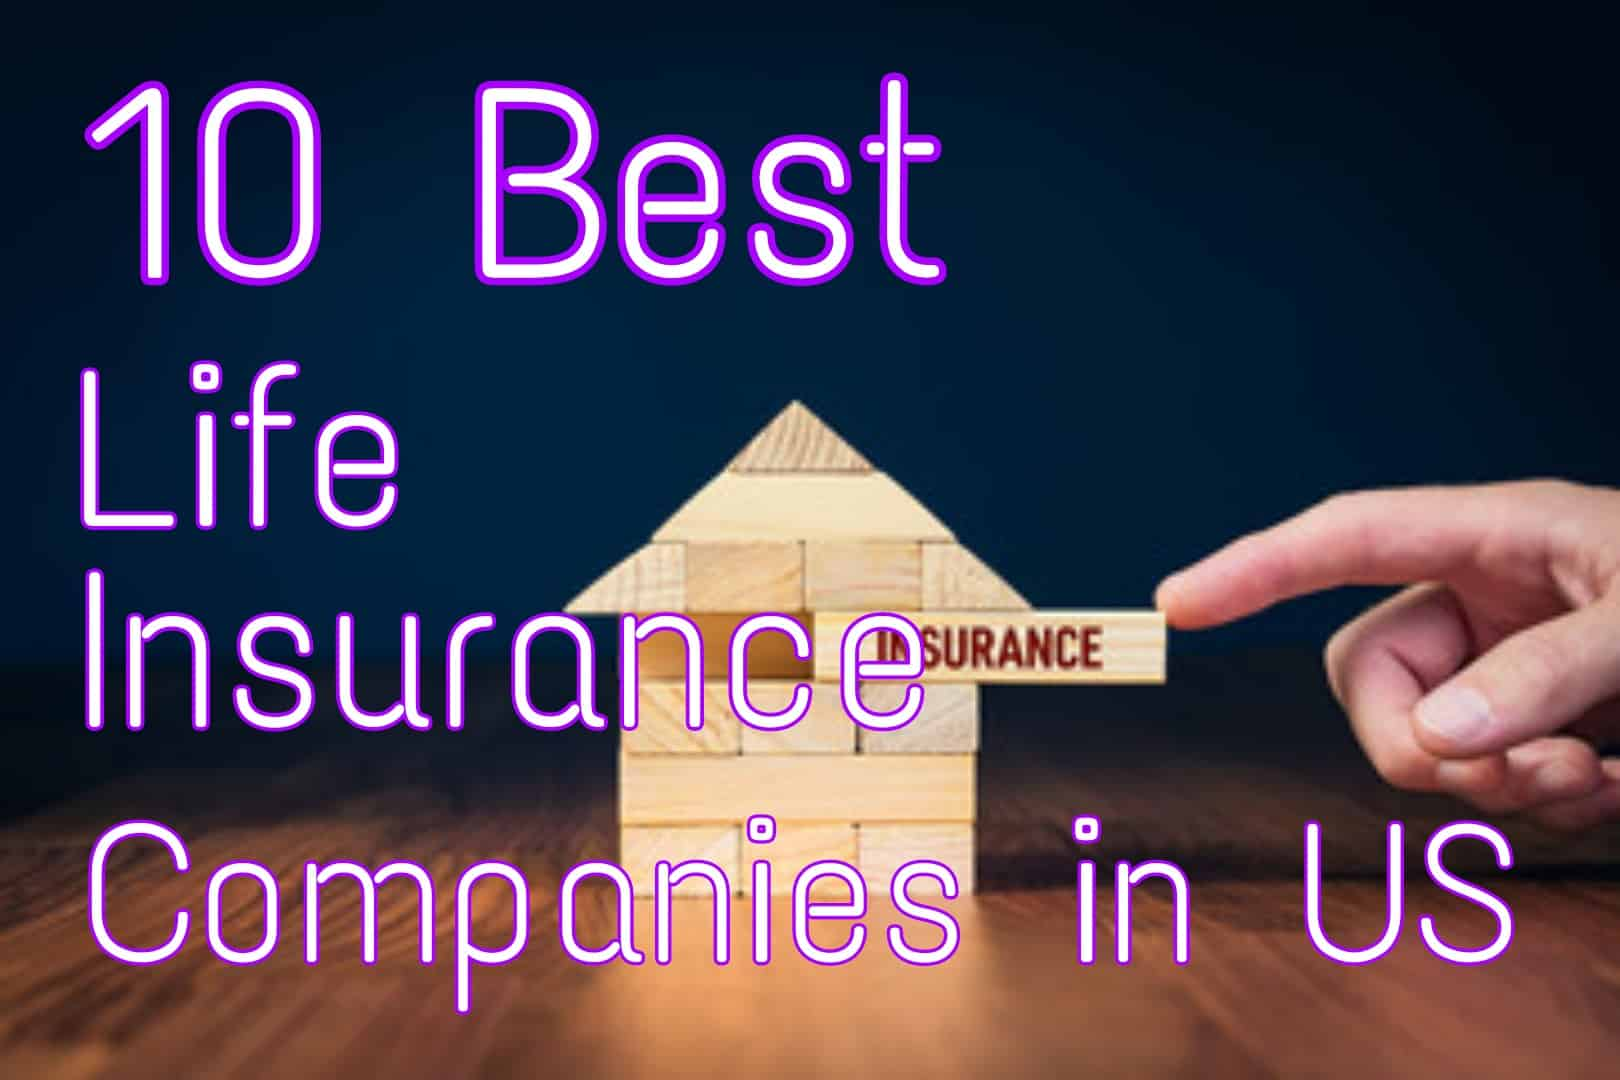 Best Life Insurance Companies in the US 10 Best life insurance companies in united state 10 Best life insurance companies in us top 10 life insurance companies top 10 life insurance companies 10 Best life insurance companies in united state 10 Best life insurance companies in us ( united state ) Life Insurance Riders Whole Life Insurance Universal Life Insurance Index Universal Life Insurance Variable Universal Life Insurance Term Life Insurance Top Life Insurance Companies in the US Prudential Financial State Farm New York Life Other Life Insurance Companies